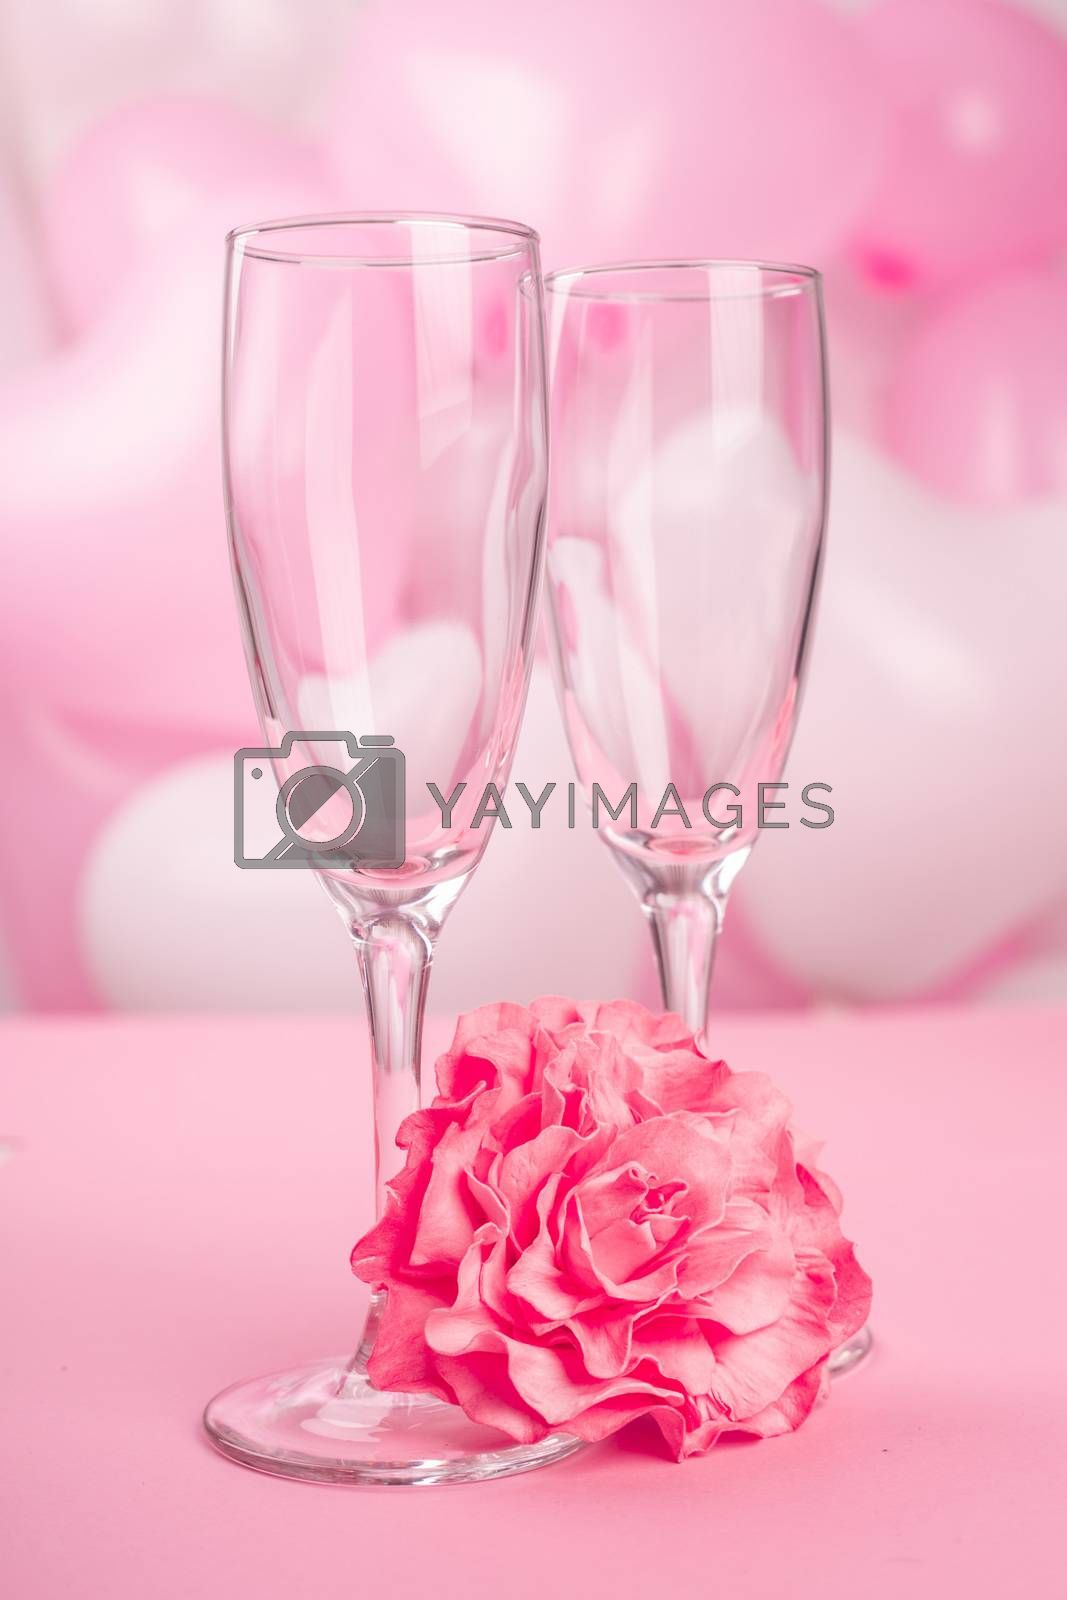 Valentines day champagne flutes glasses on pink balloons background with copy space for text